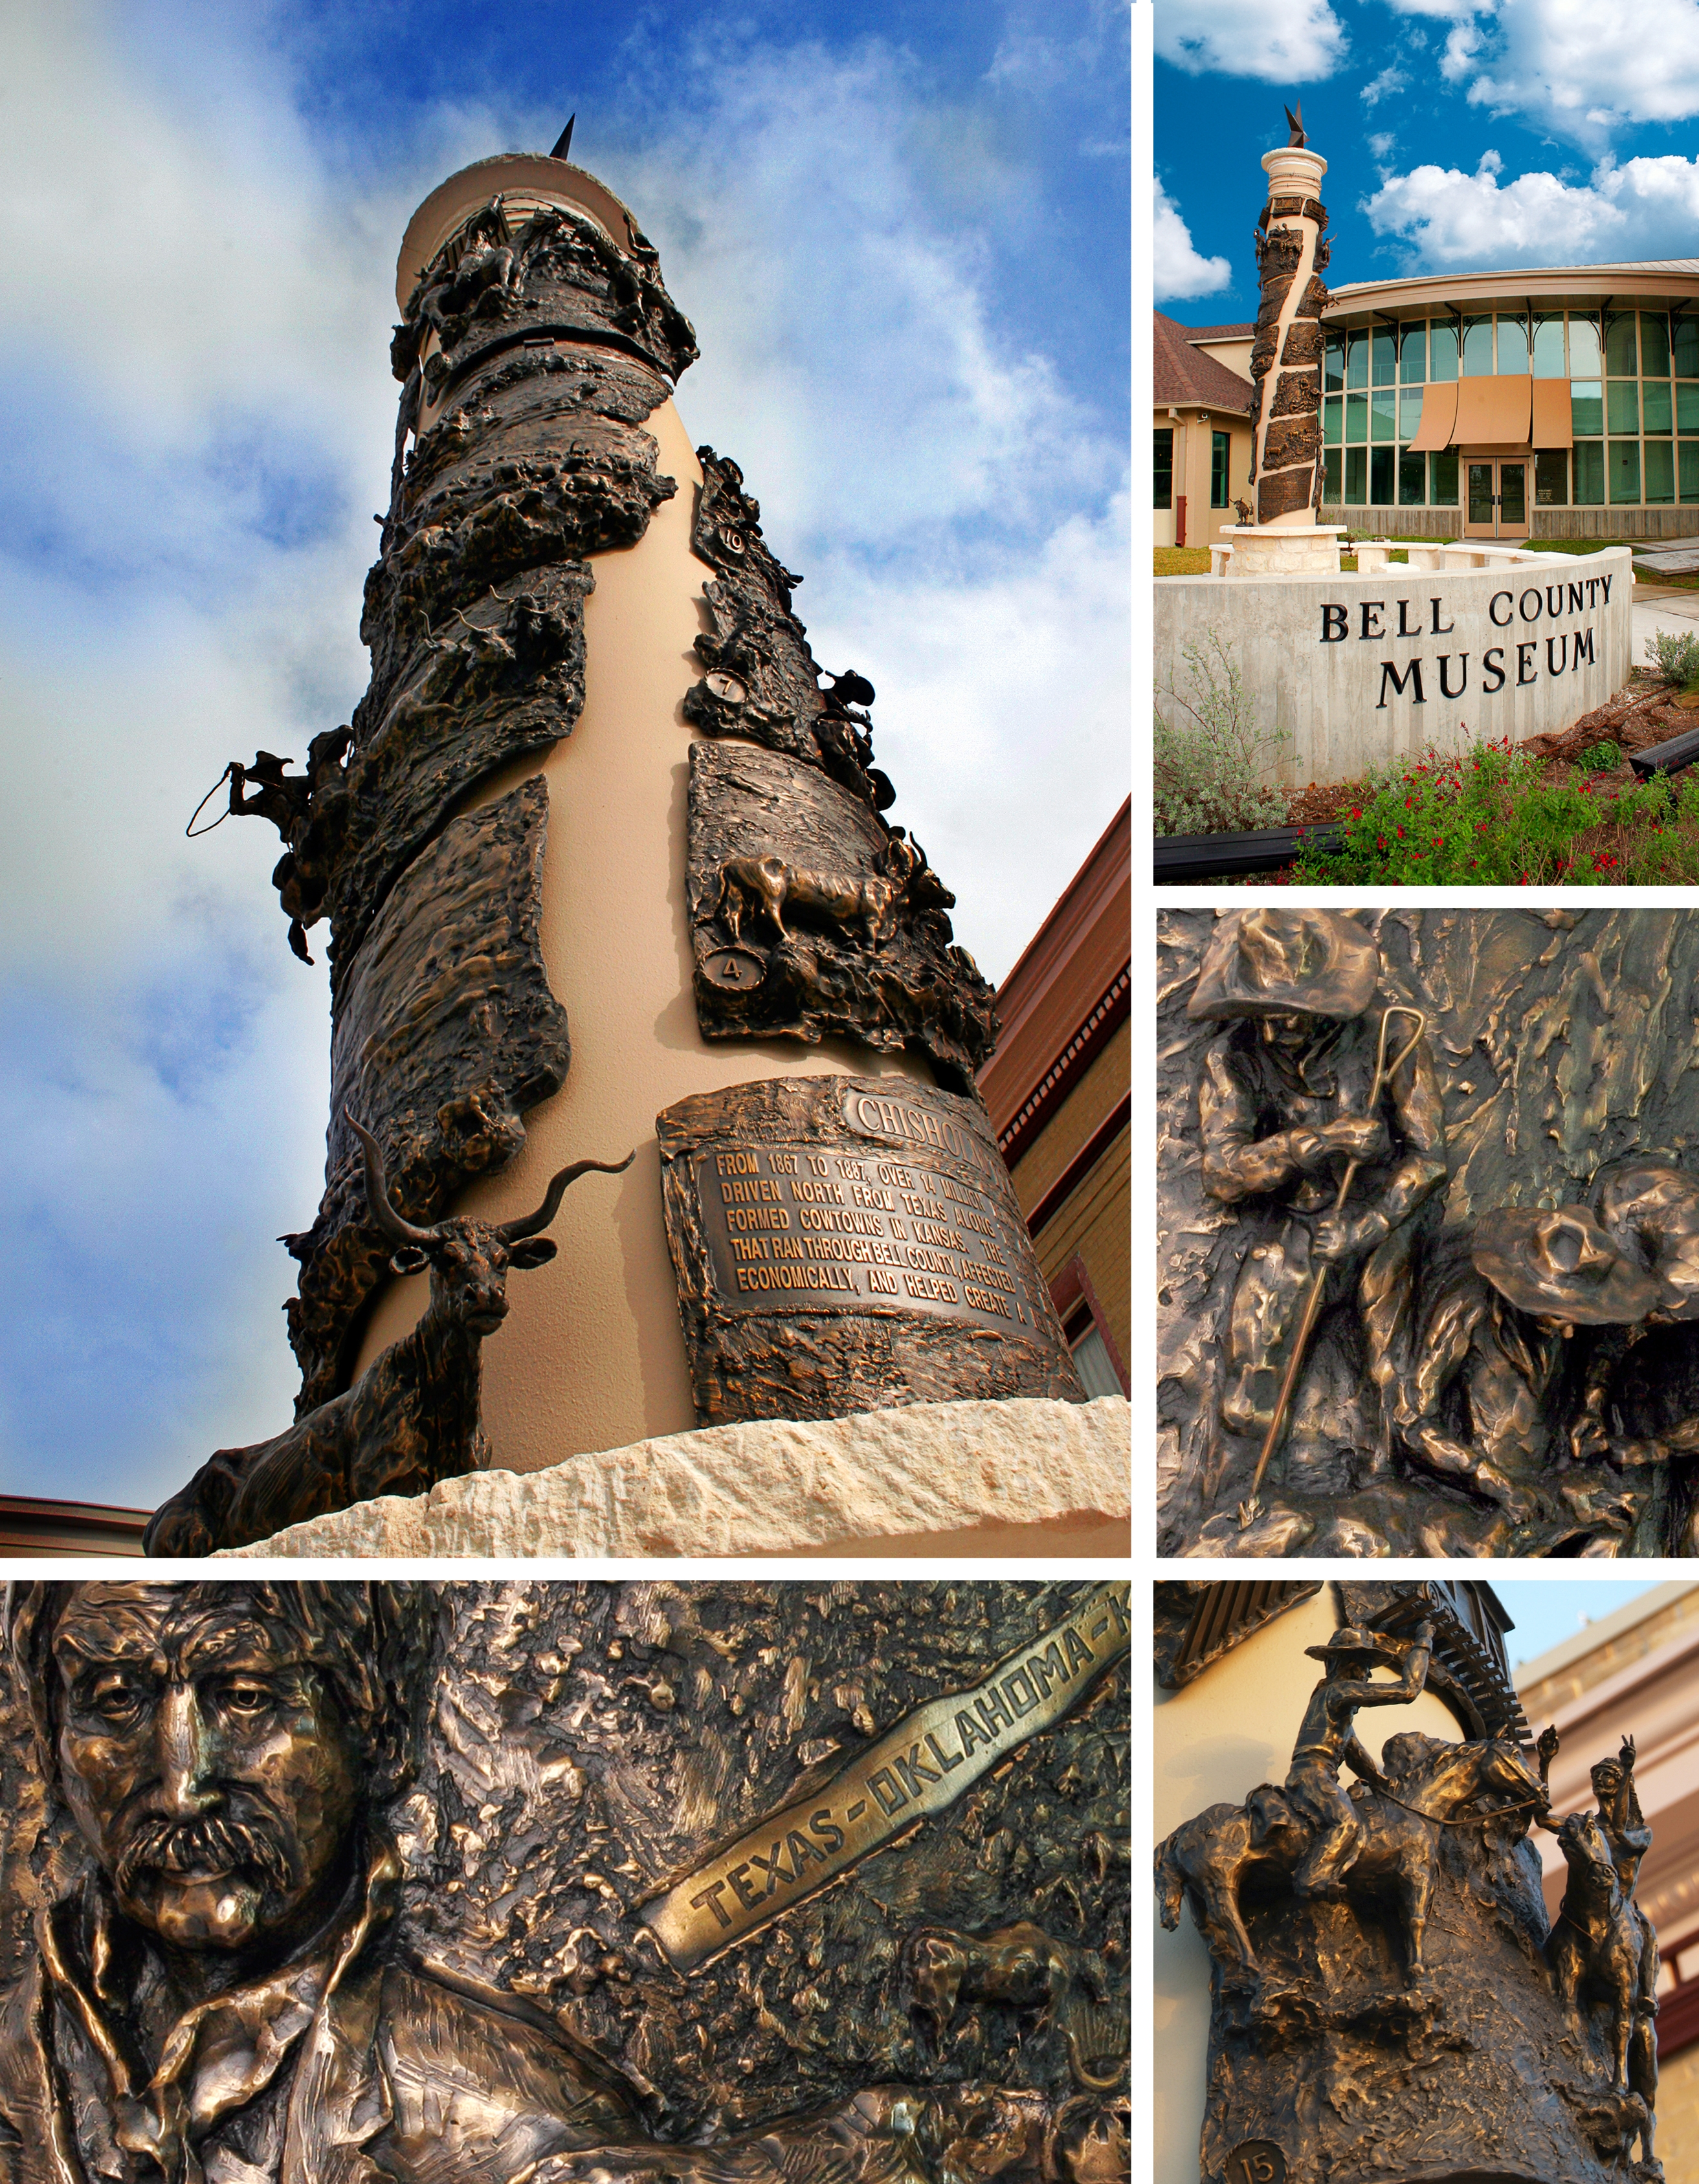 "Guests can see sculptor Troy Kelly's work ""Up the Chisholm Trail"" when they visit the museum. The sculpture includes 17 bronze panels that tell the history of the Chisholm Trail."